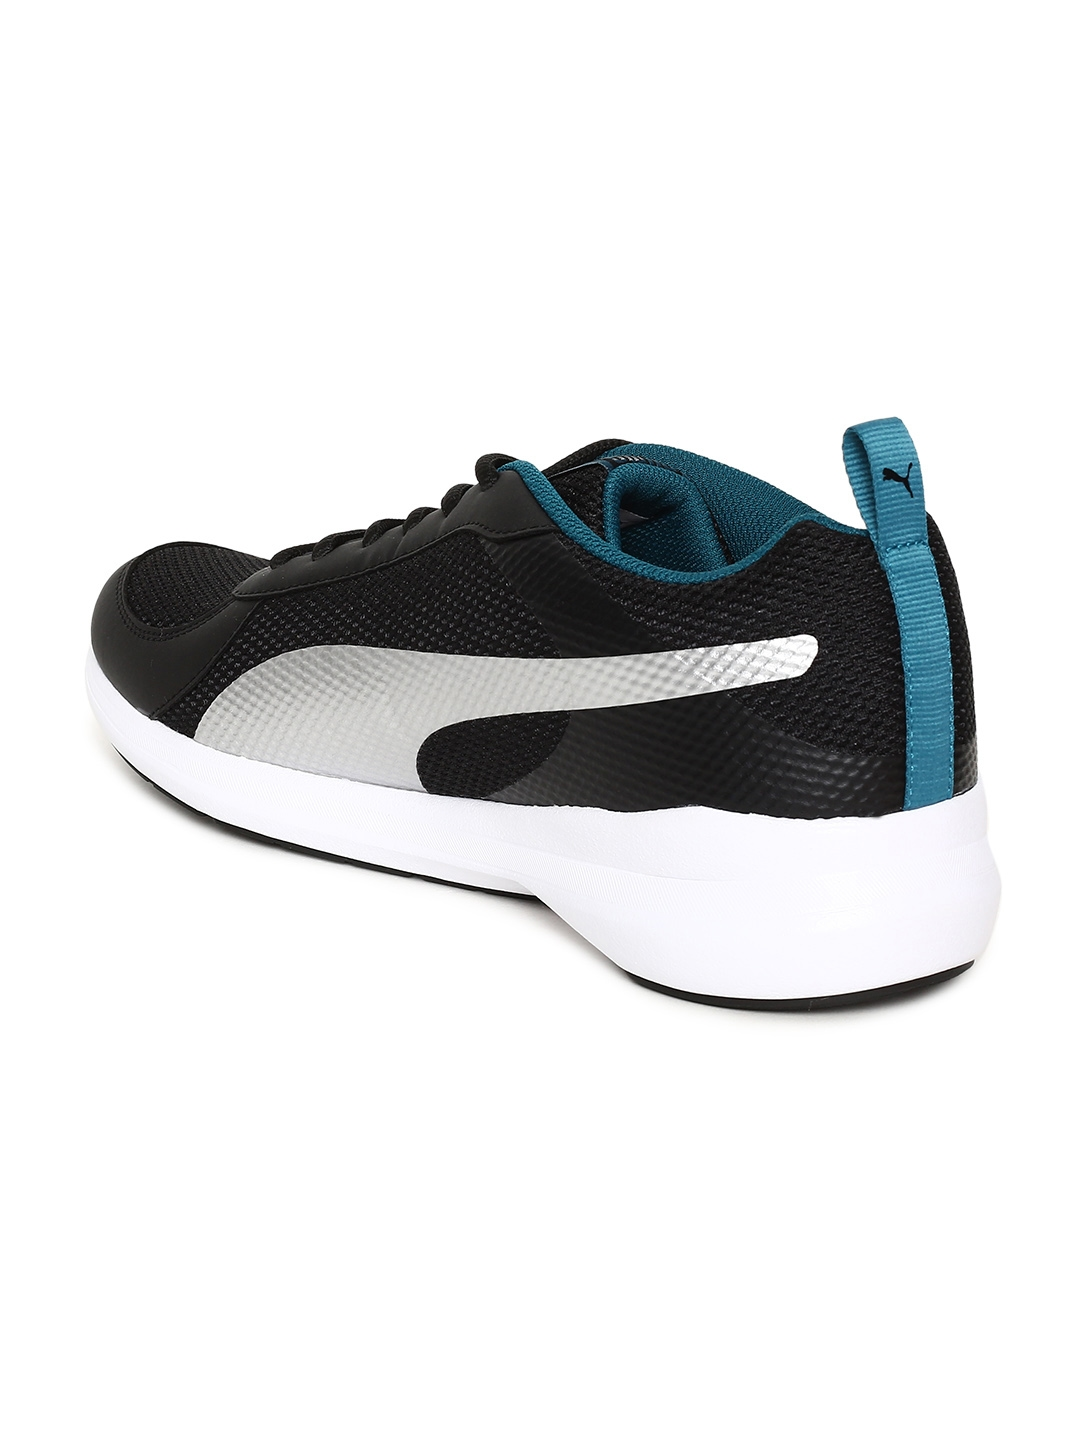 b96c4b5ba4ca0 Buy Puma Men Black Zenith IDP IDP Running Shoes - Sports Shoes for ...